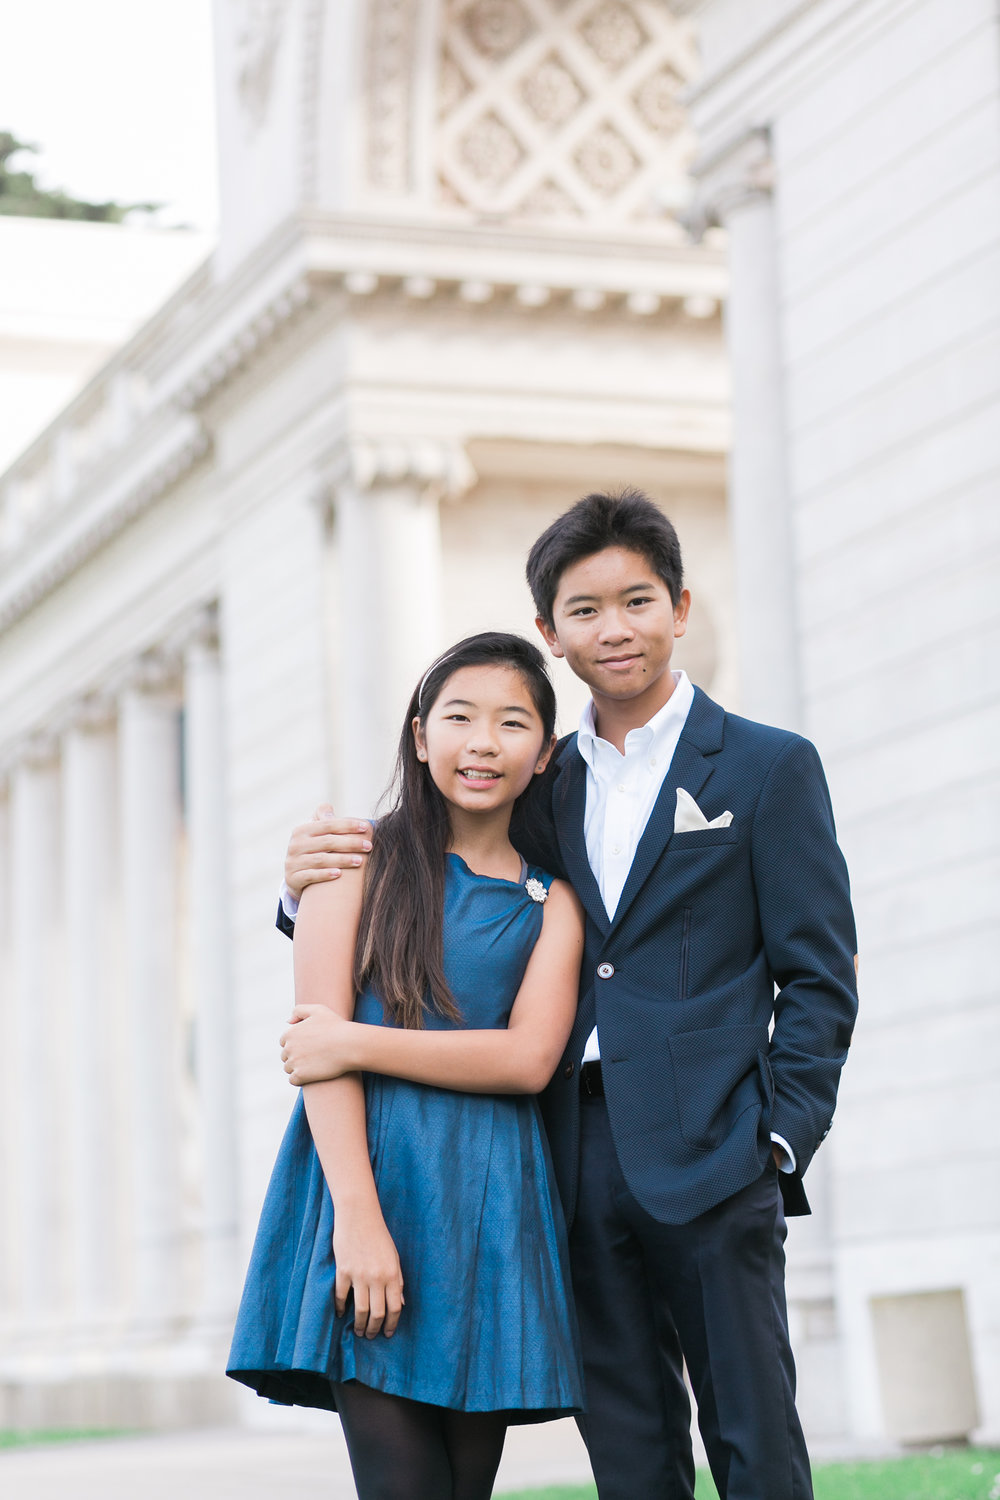 San_Francisco_Children_Family_Portraits_008.jpg